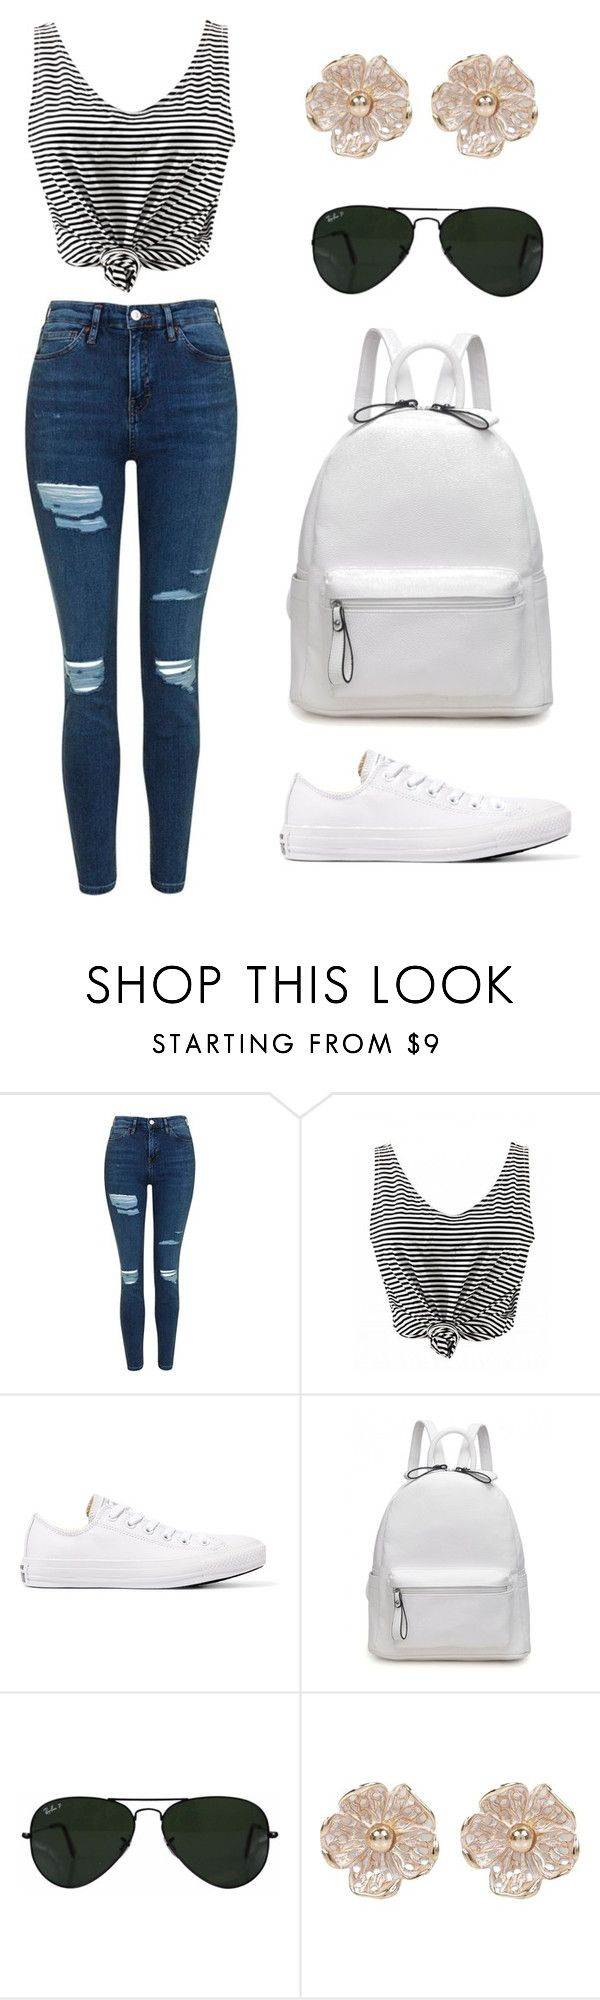 """Untitled #212"" on Polyvore featuring Topshop, Converse, Ray-Ban and River Island"